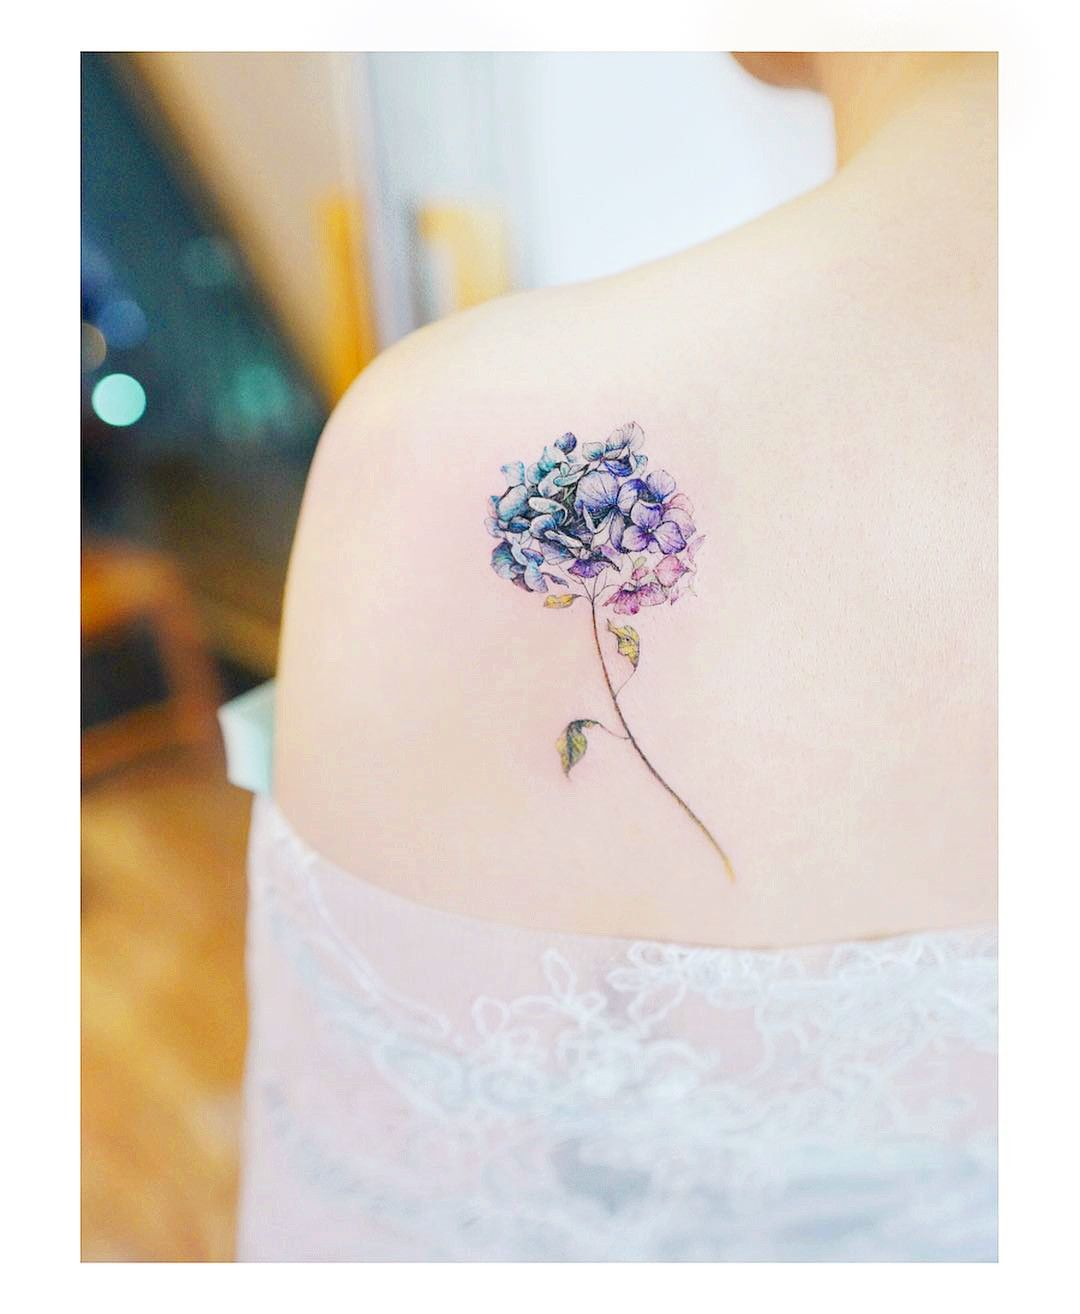 80 Best Tattoo Ideas For Women In 2019